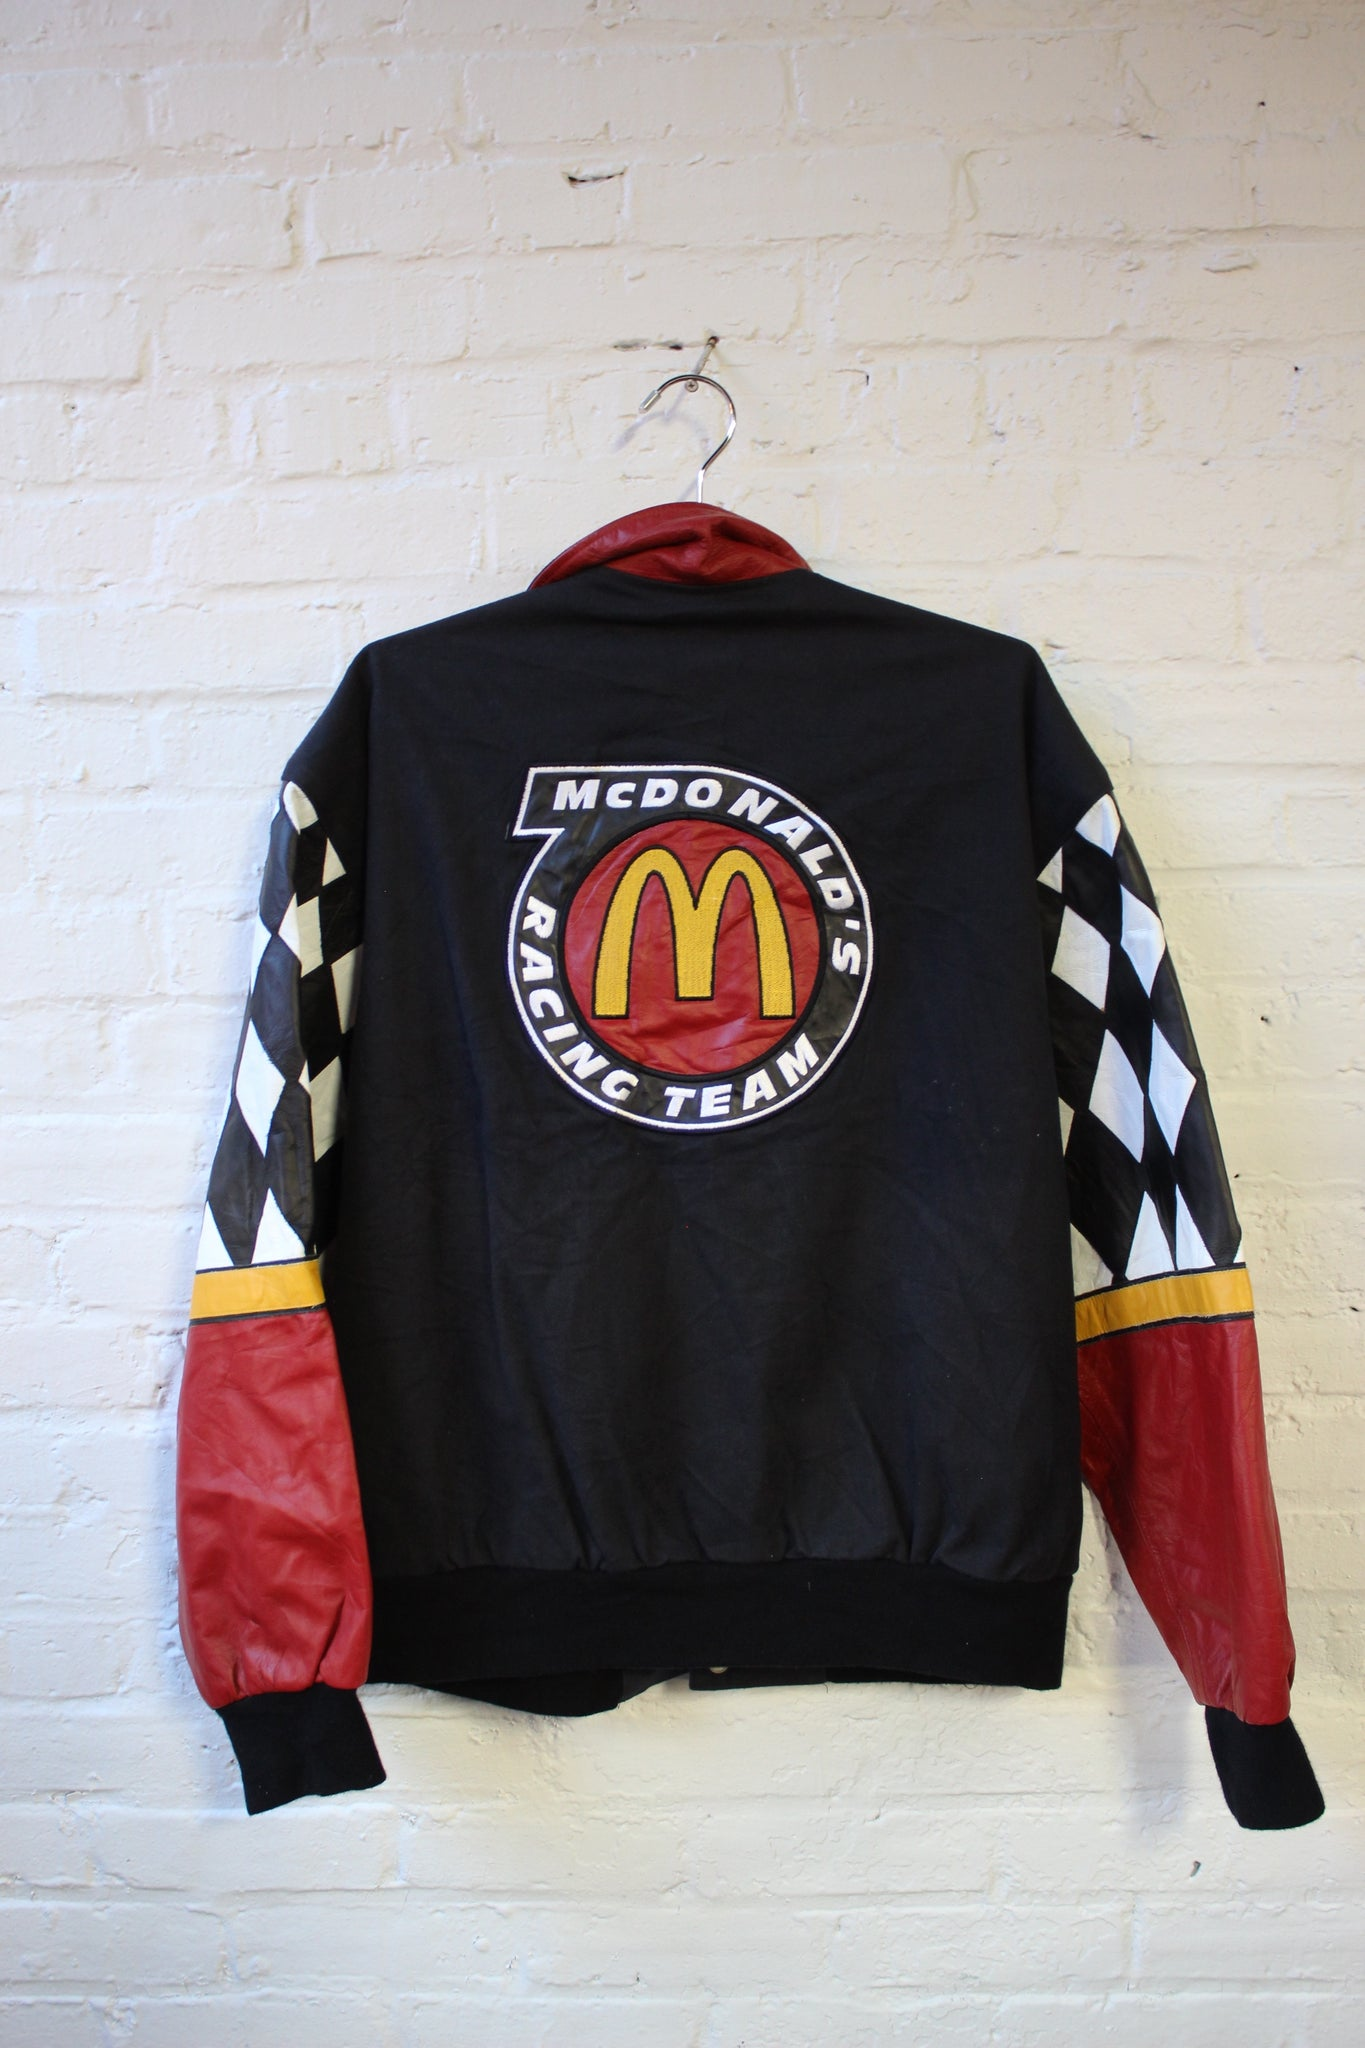 Mcdonalds Racing Team Black Jacket